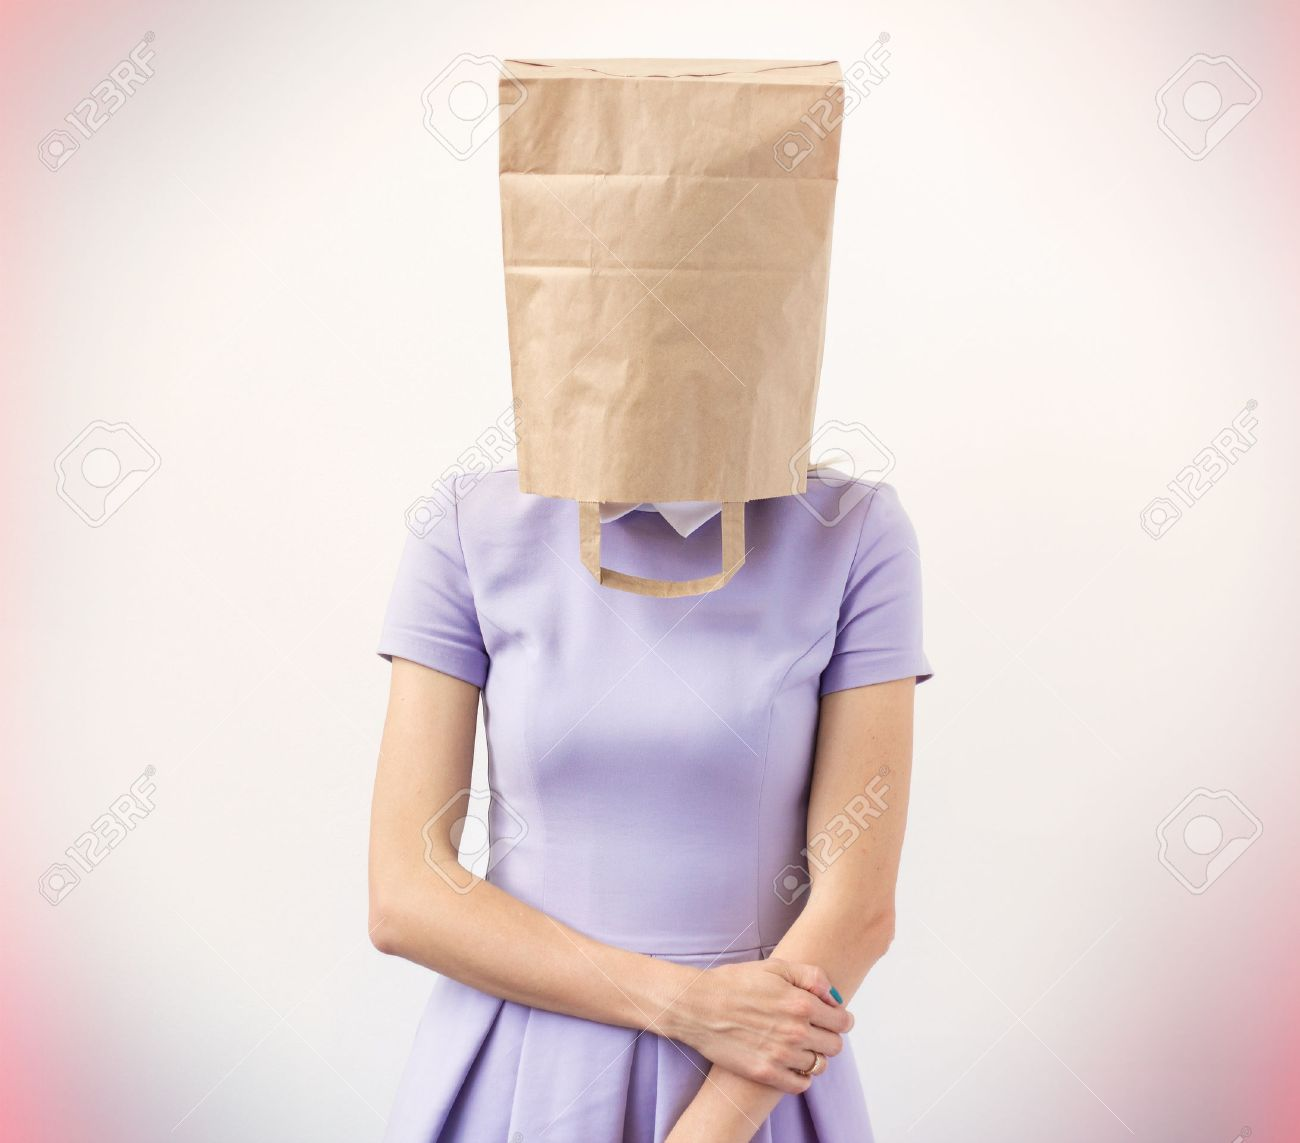 29799356-young-woman-with-paper-bag-over